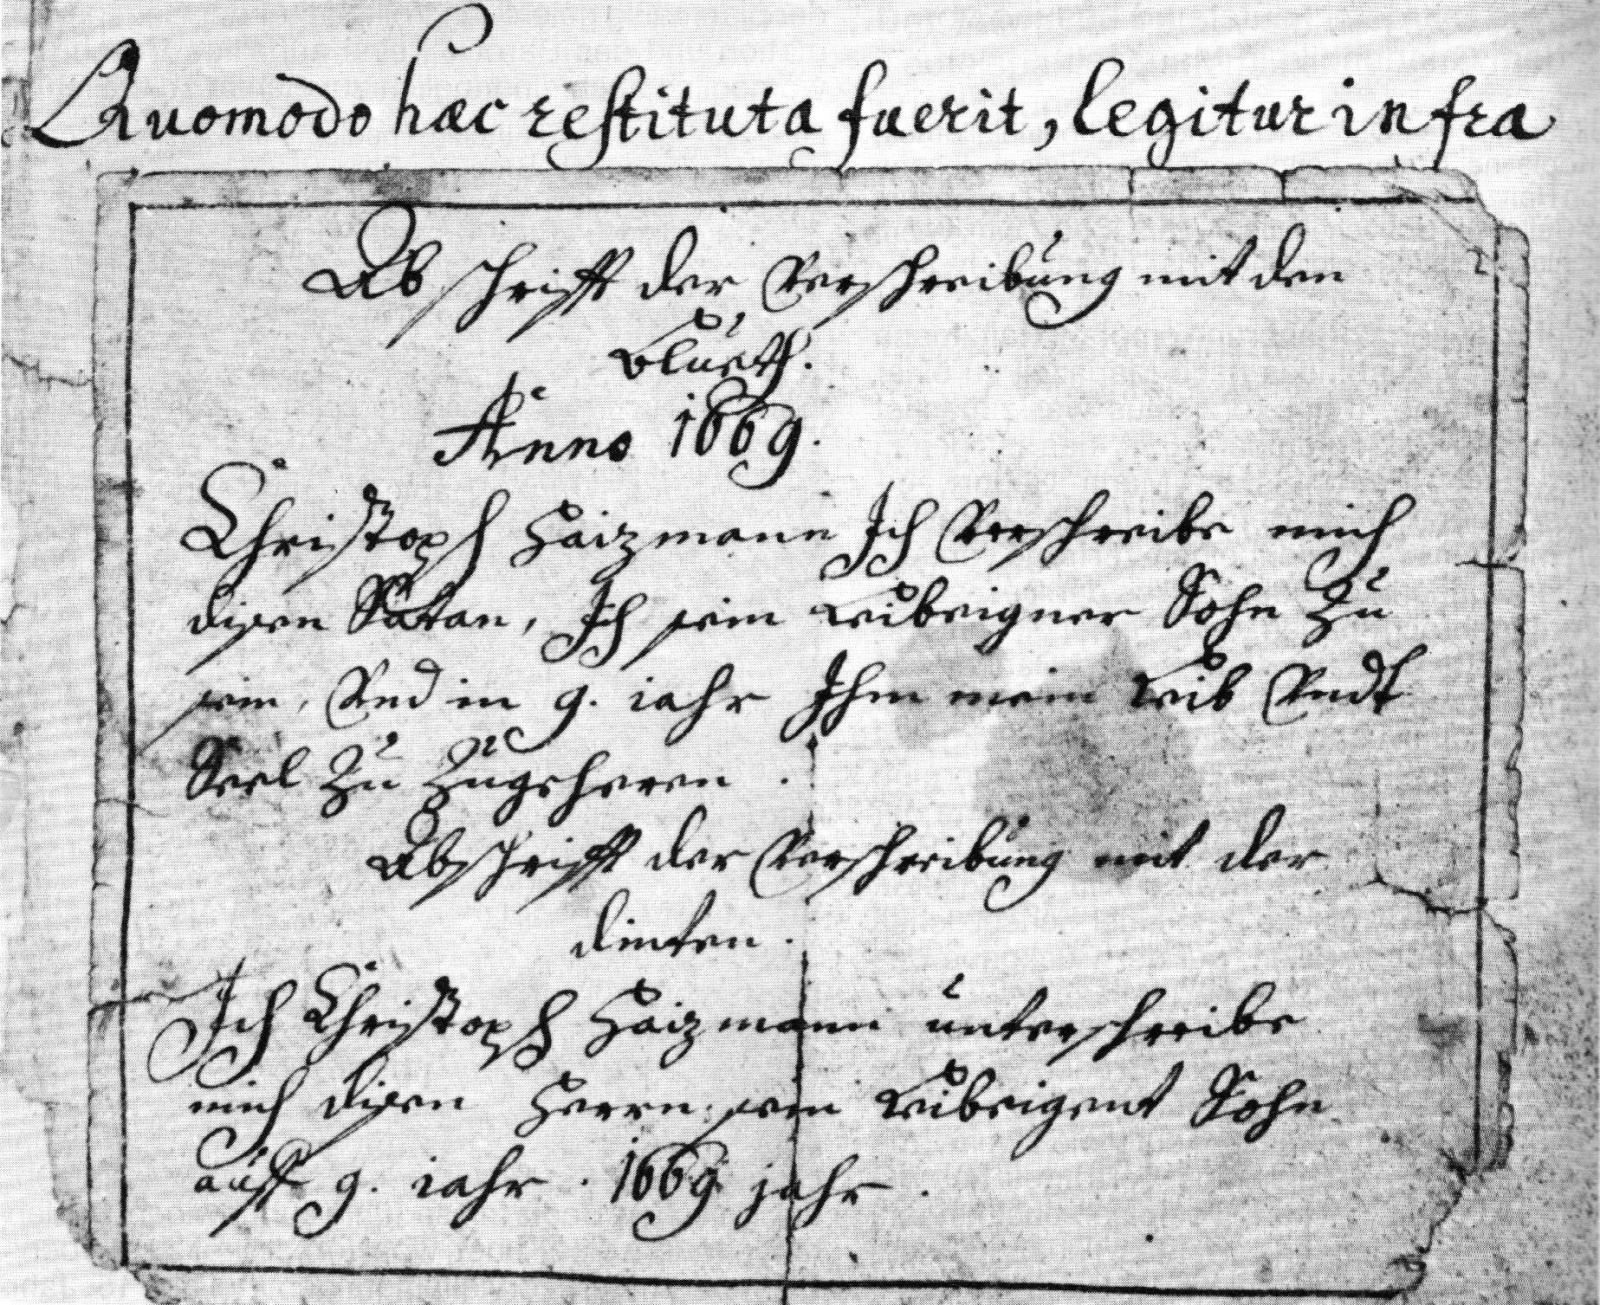 Copy of a written deal by Christoph Haizmann from 1669.